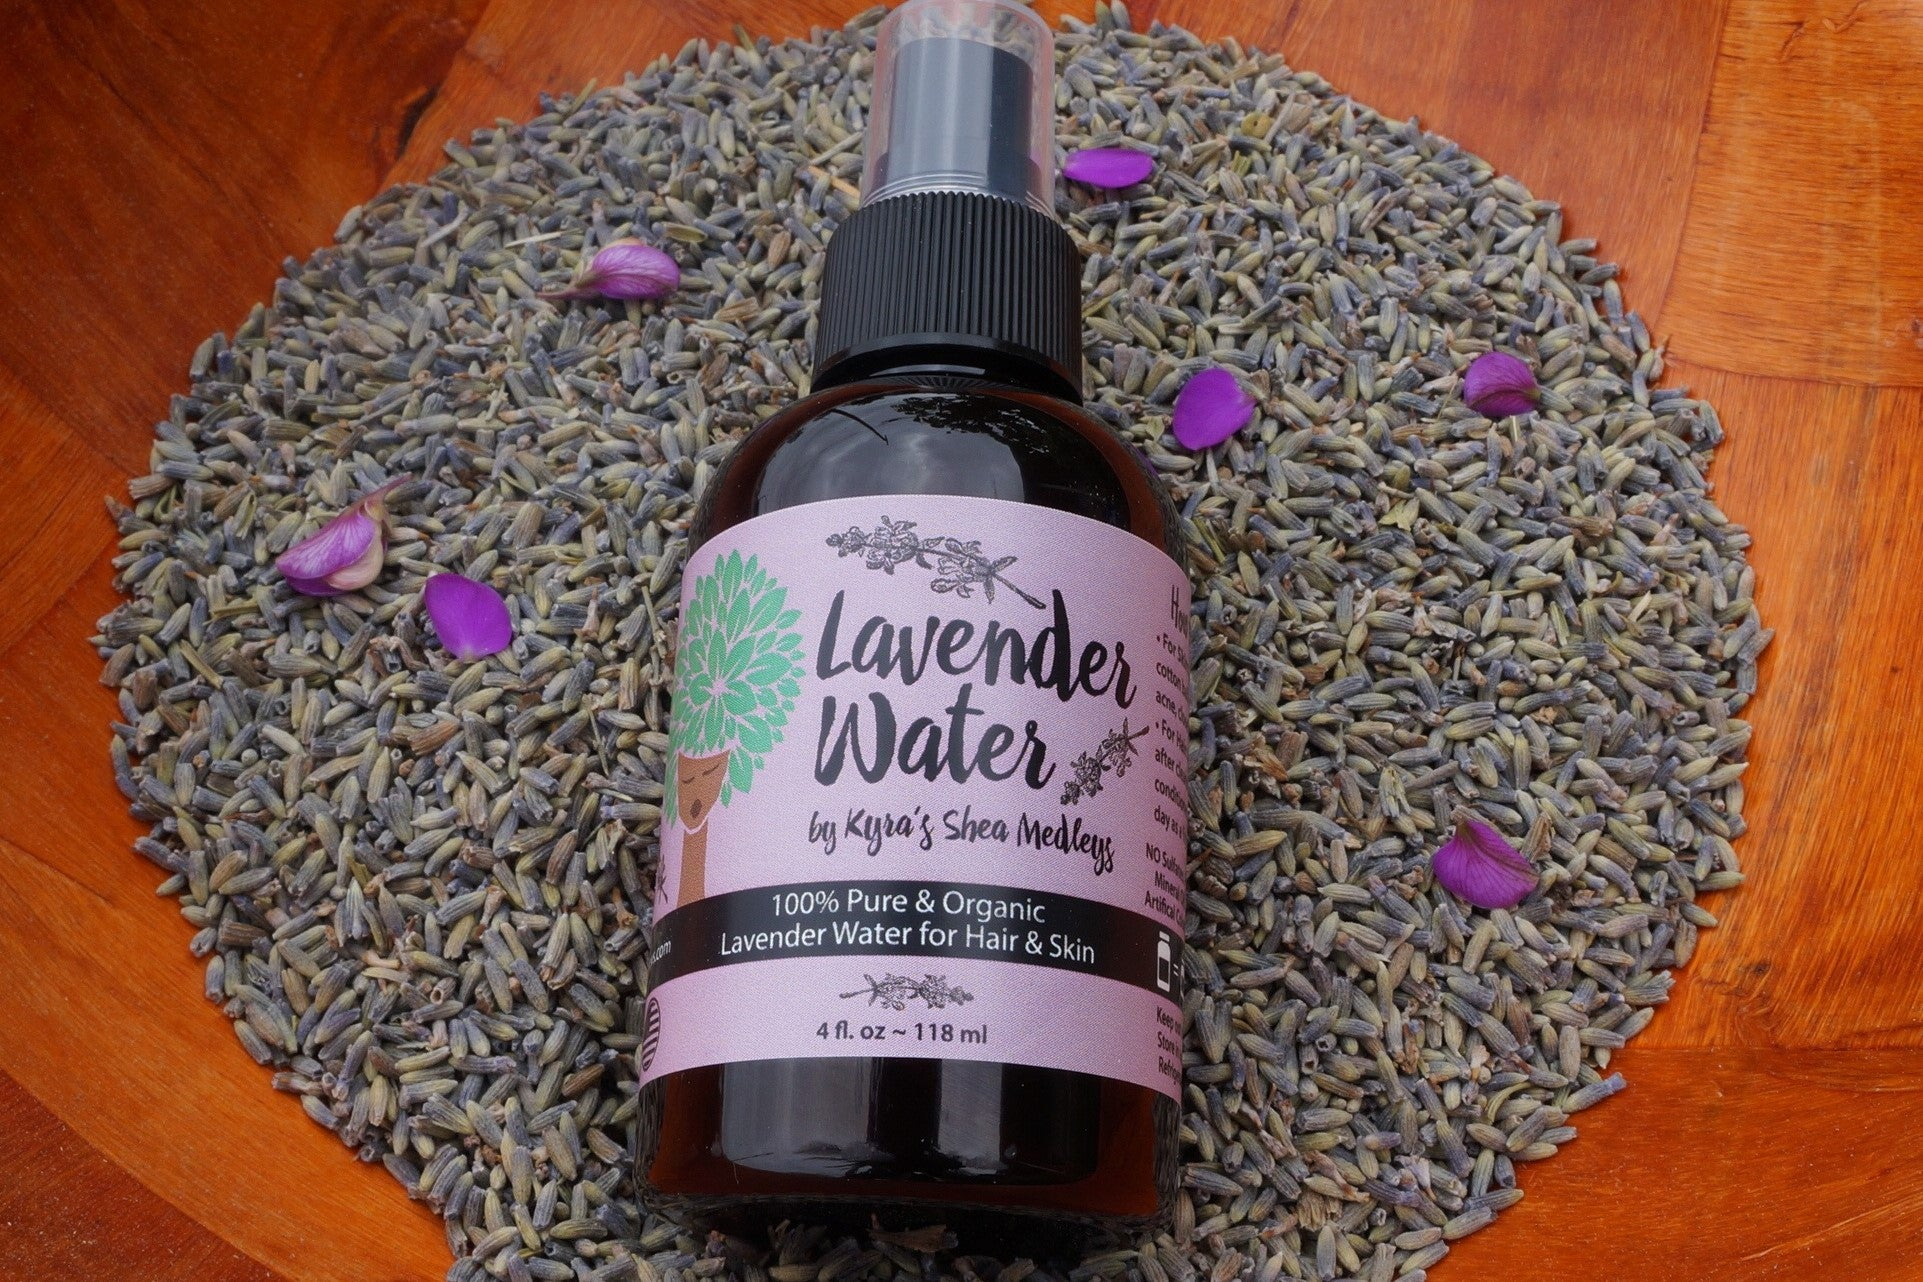 Lavender Water - Floral Water and Toner for Natural Hair and Skin